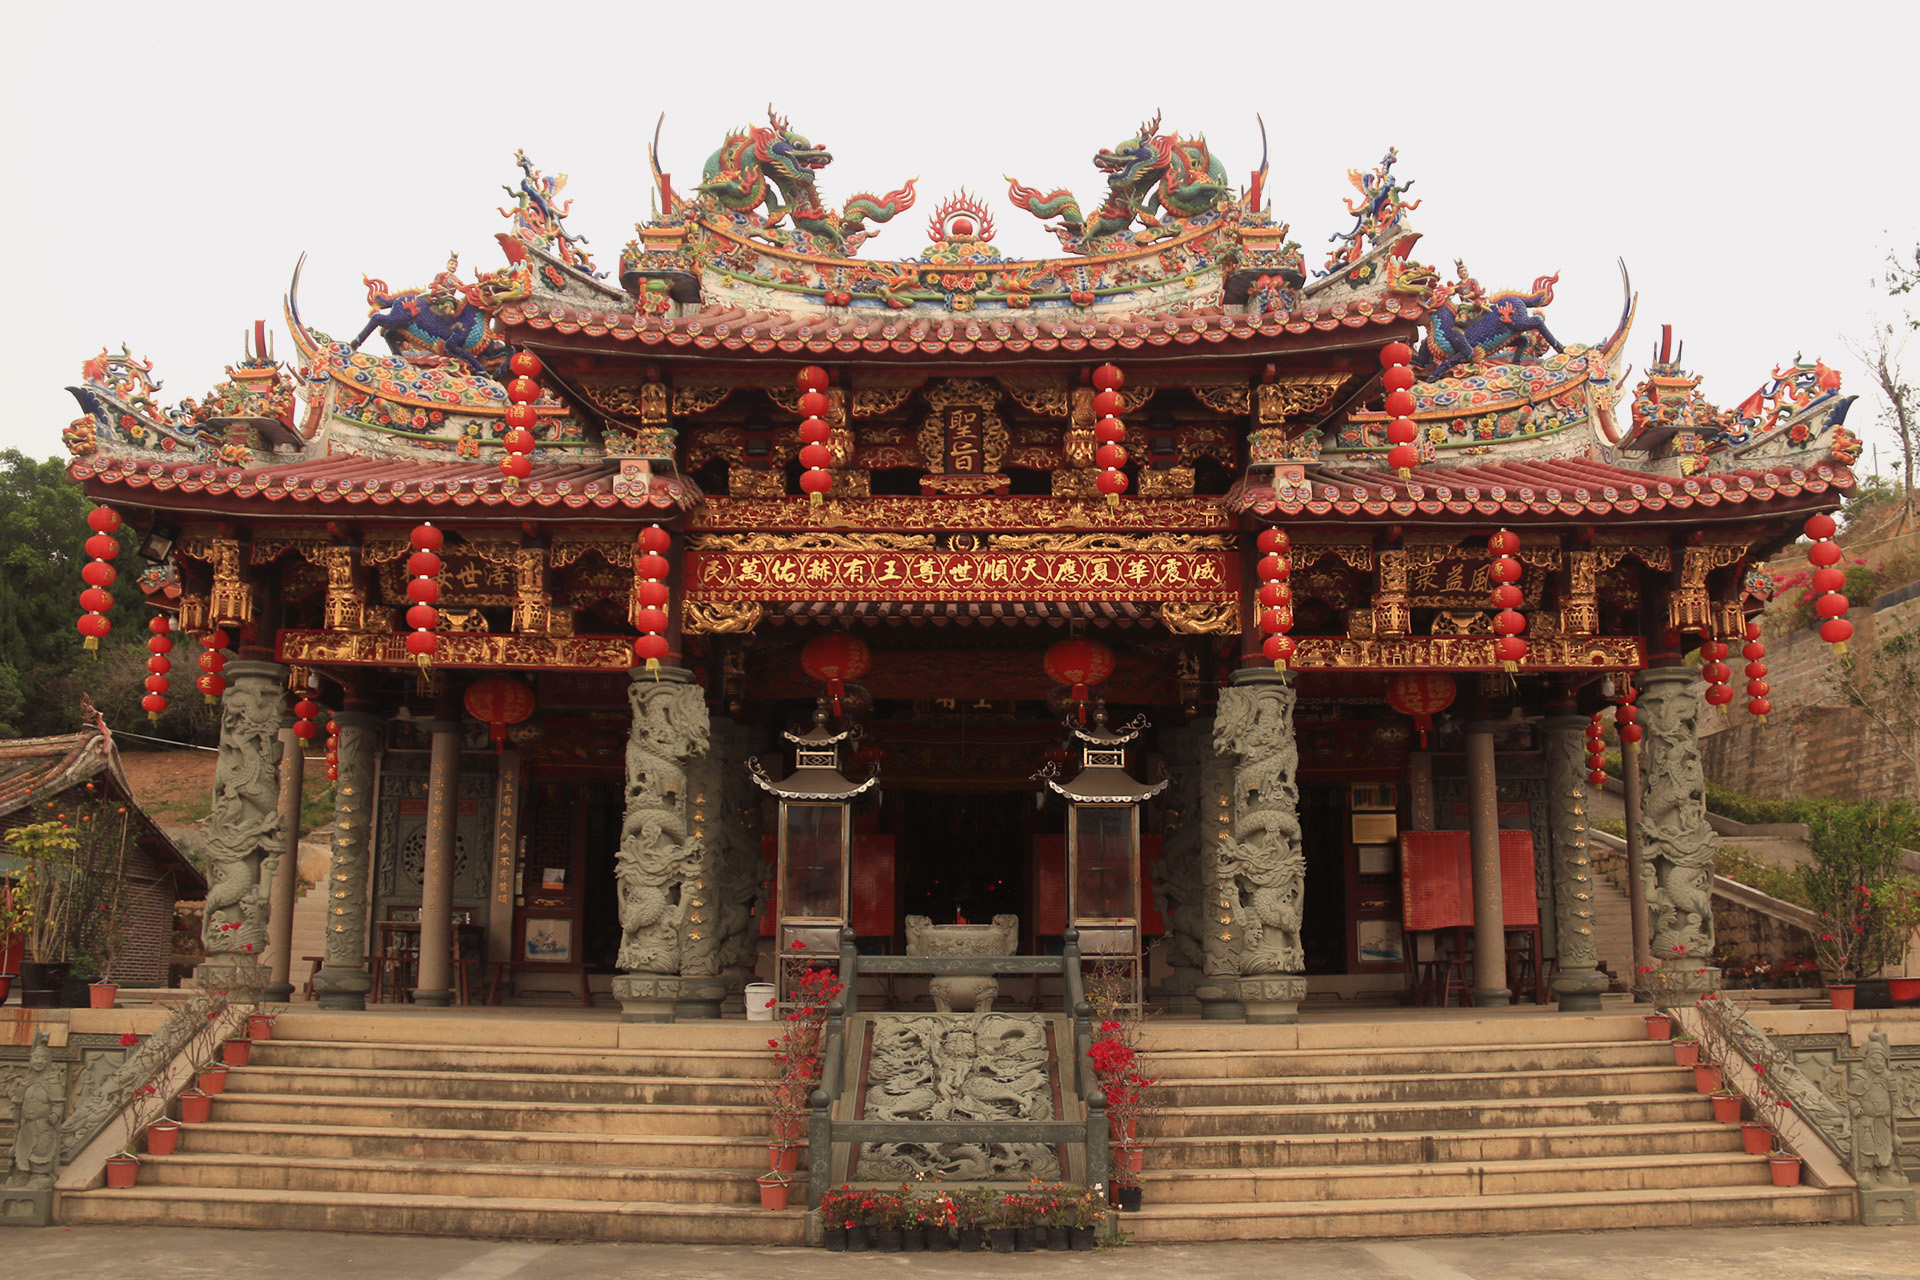 Ornate golden and red facade of the Hui Tek Chun Ong Temple in Puhou, China